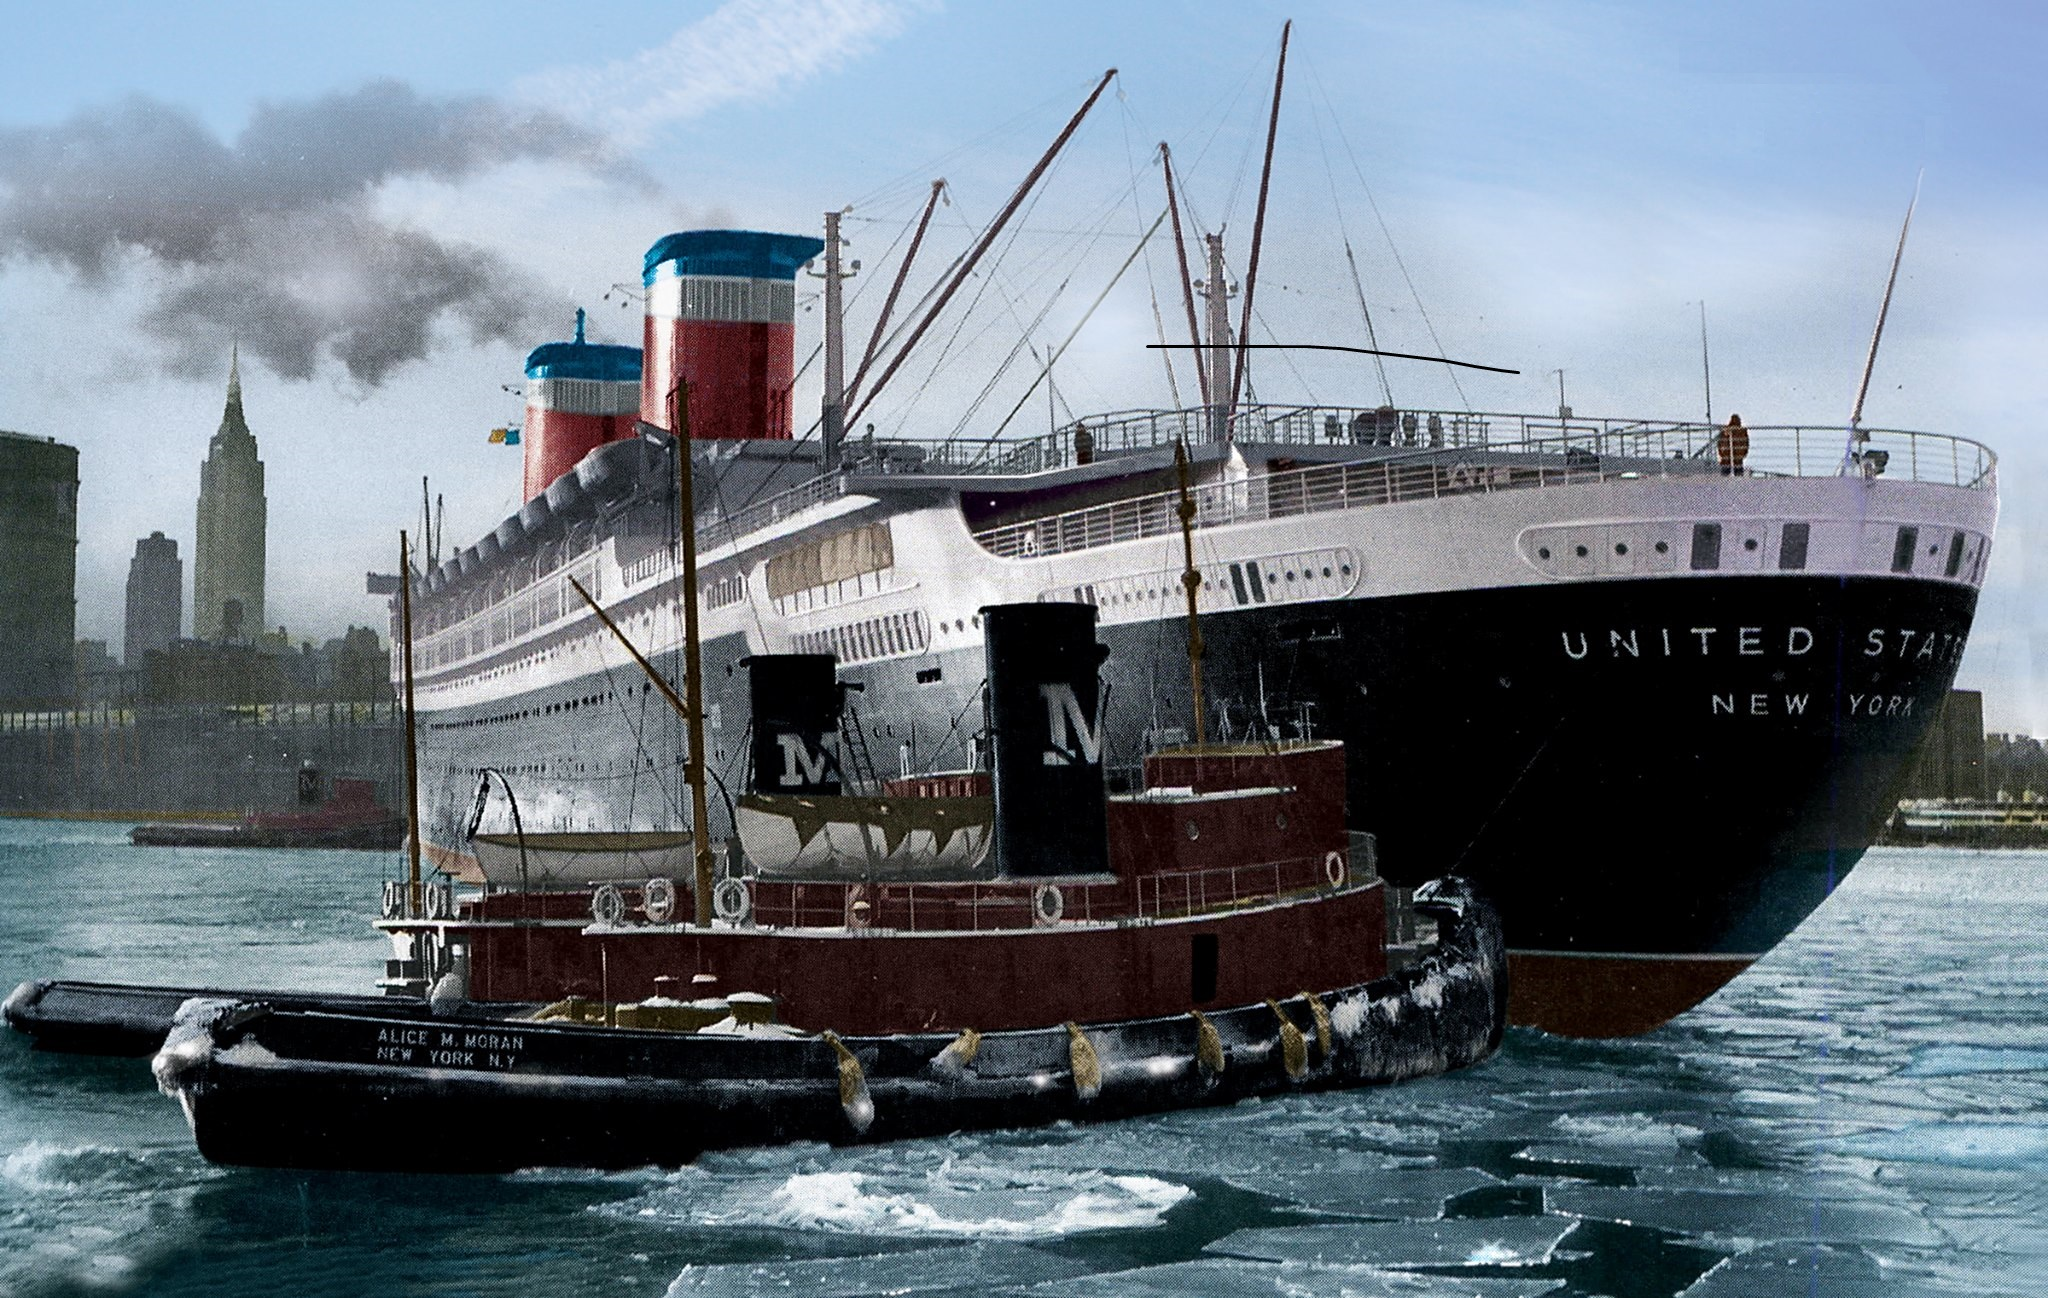 SS United States assisted by Moran tugboats in New York harbor.